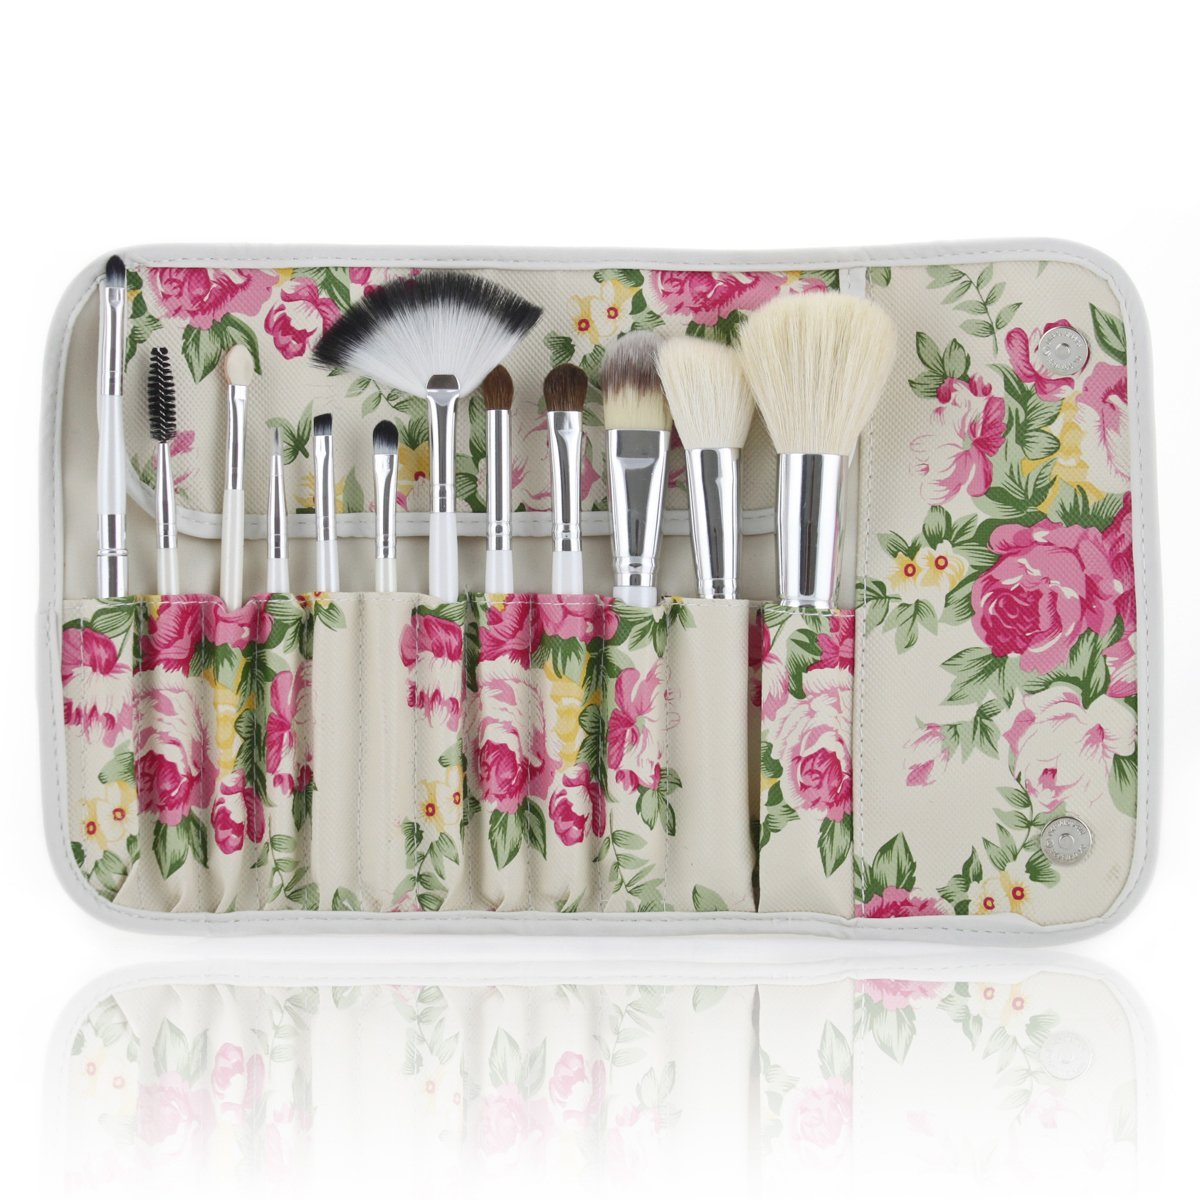 Frola Cosmetics Pro 12 Pcs Goat Hair Makeup Brush Brushes Set Kits with Rose Pattern Case Bag